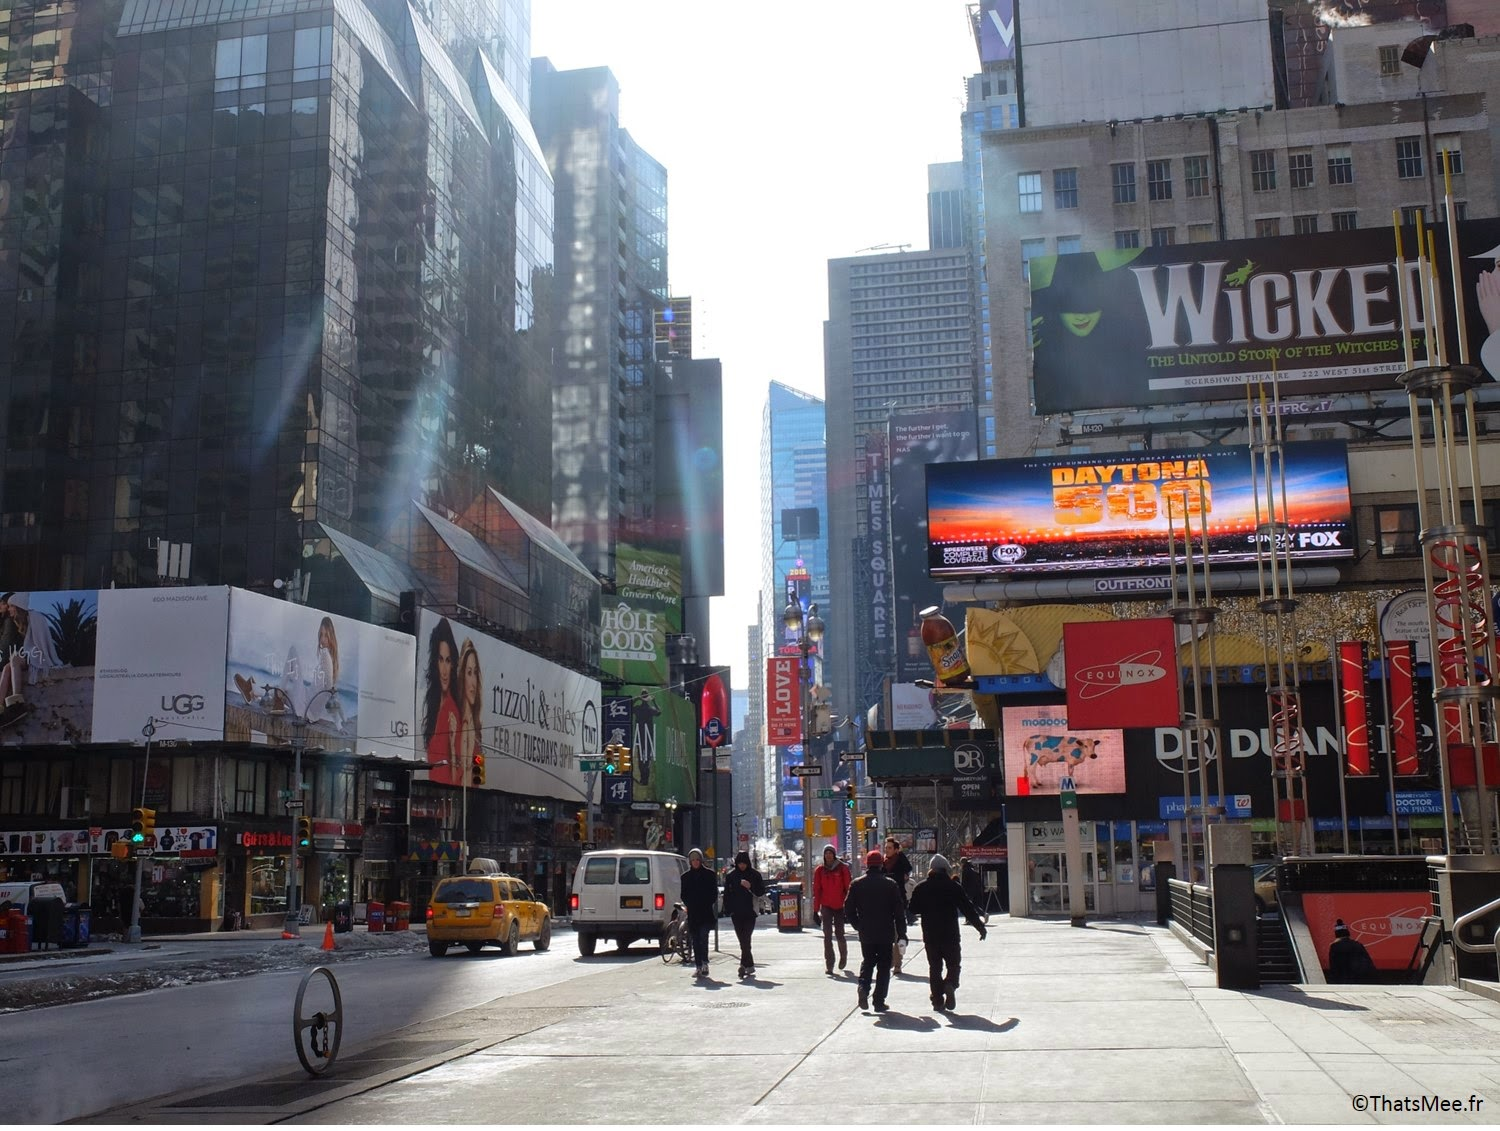 NY visiter New-York Times Square et Broadway disney store Forever 21